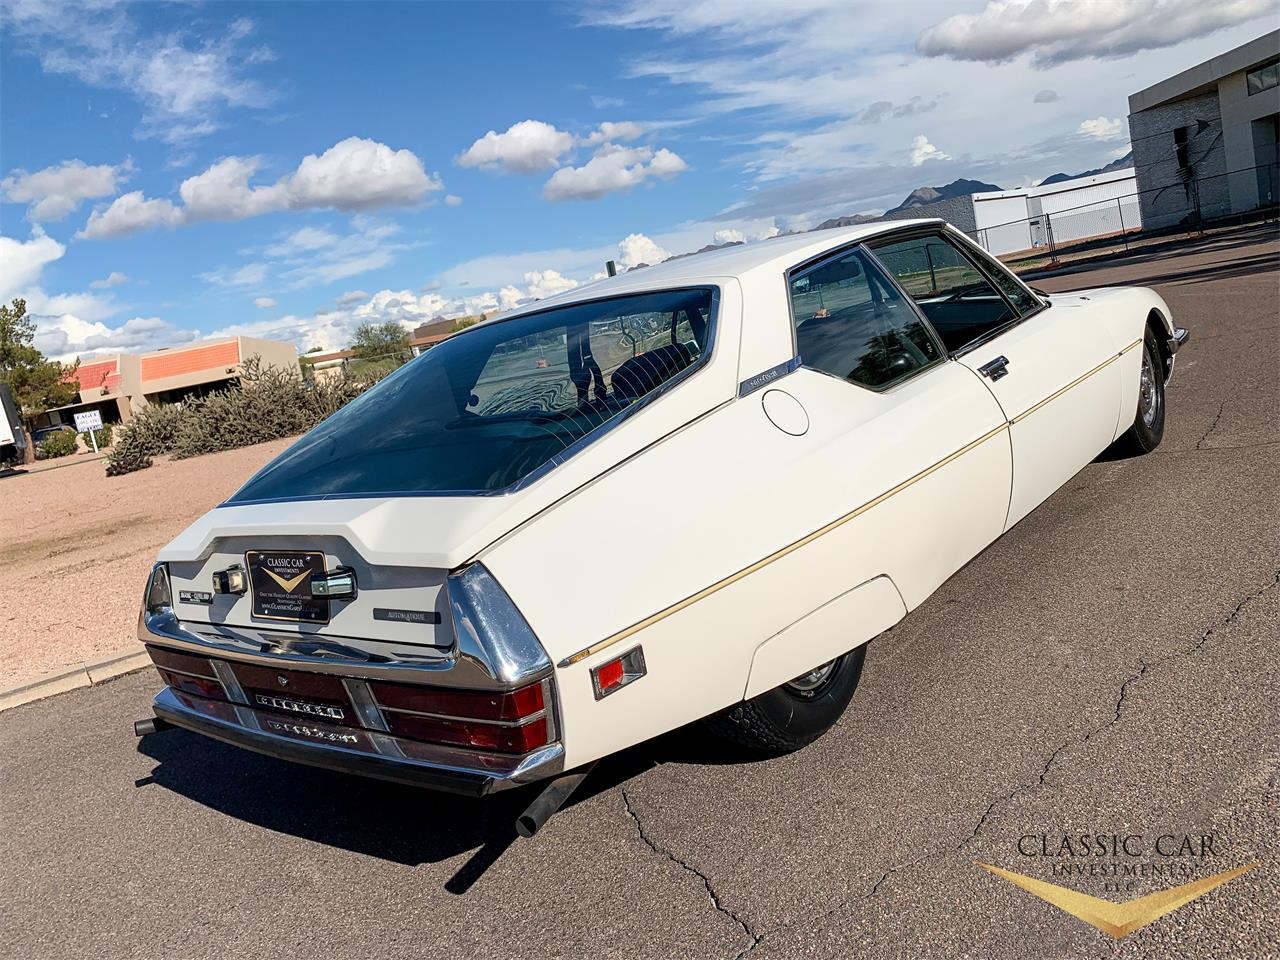 Large Picture of 1972 Citroen SM located in Arizona - $53,500.00 Offered by Classic Car Investments LLC - P667